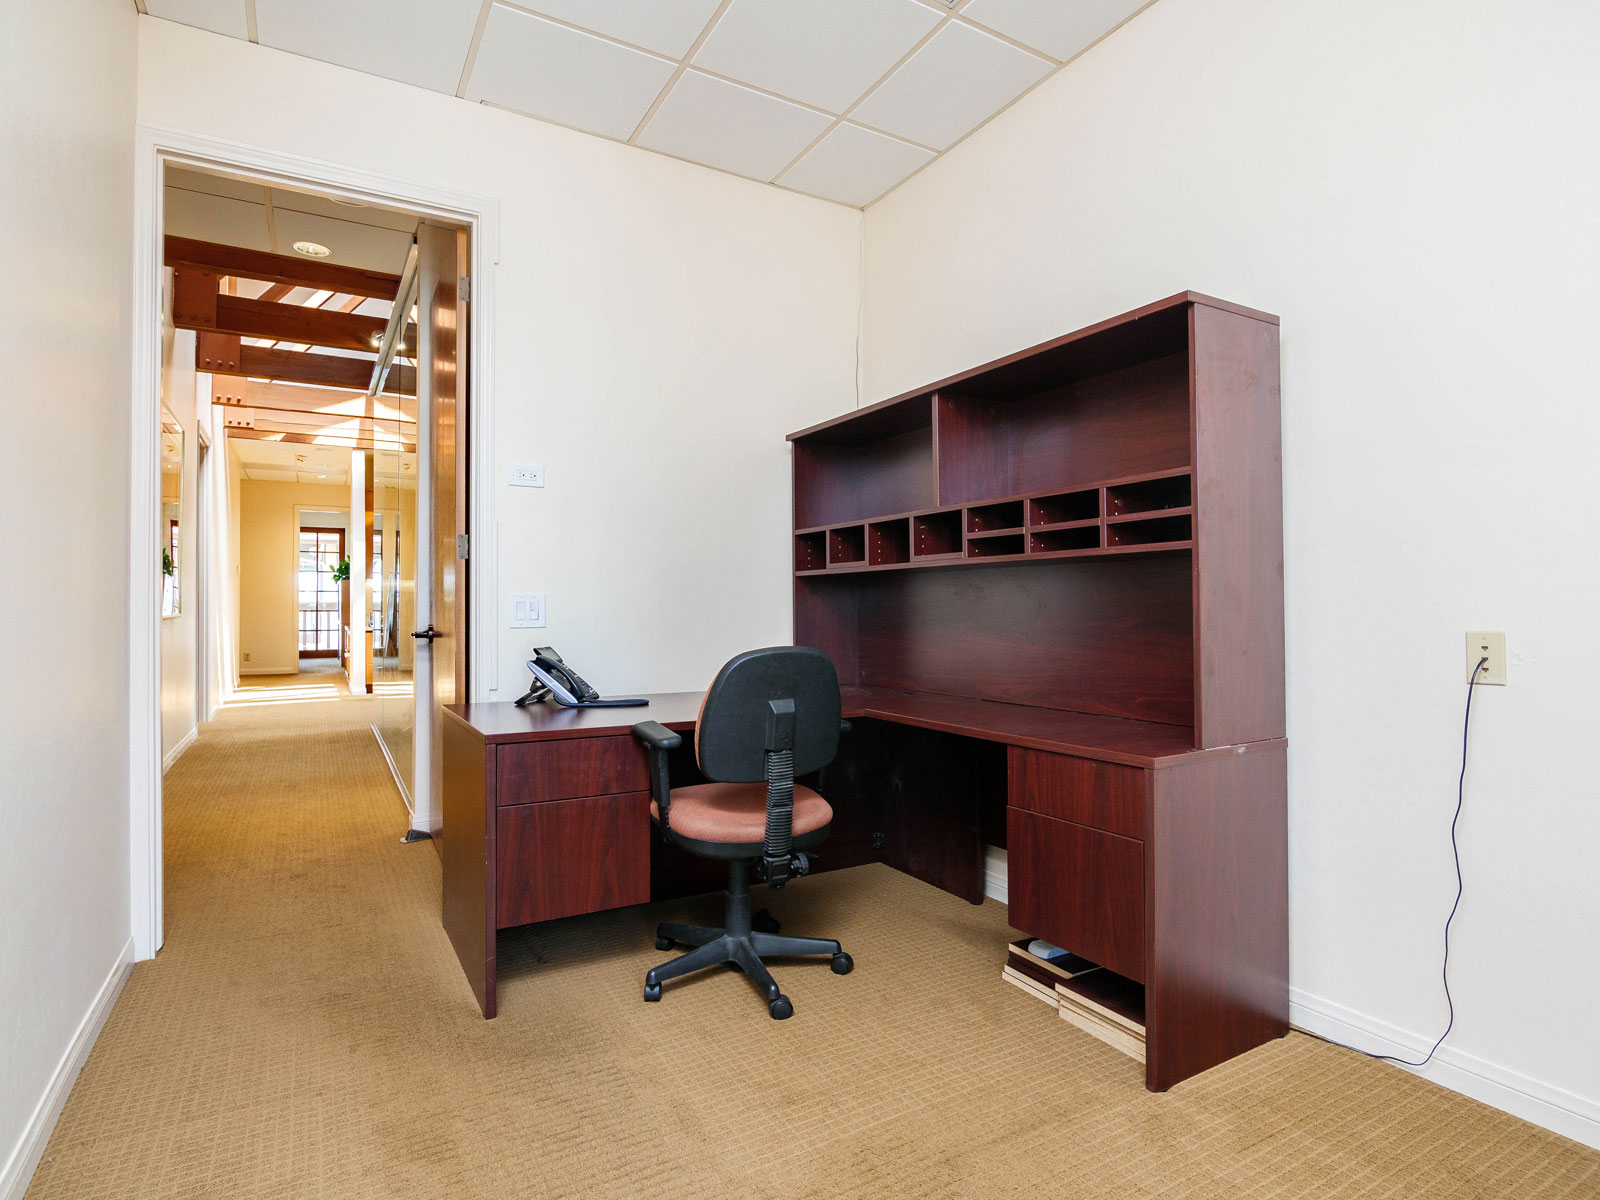 316-s-melrose-executive-office-for-lease-204